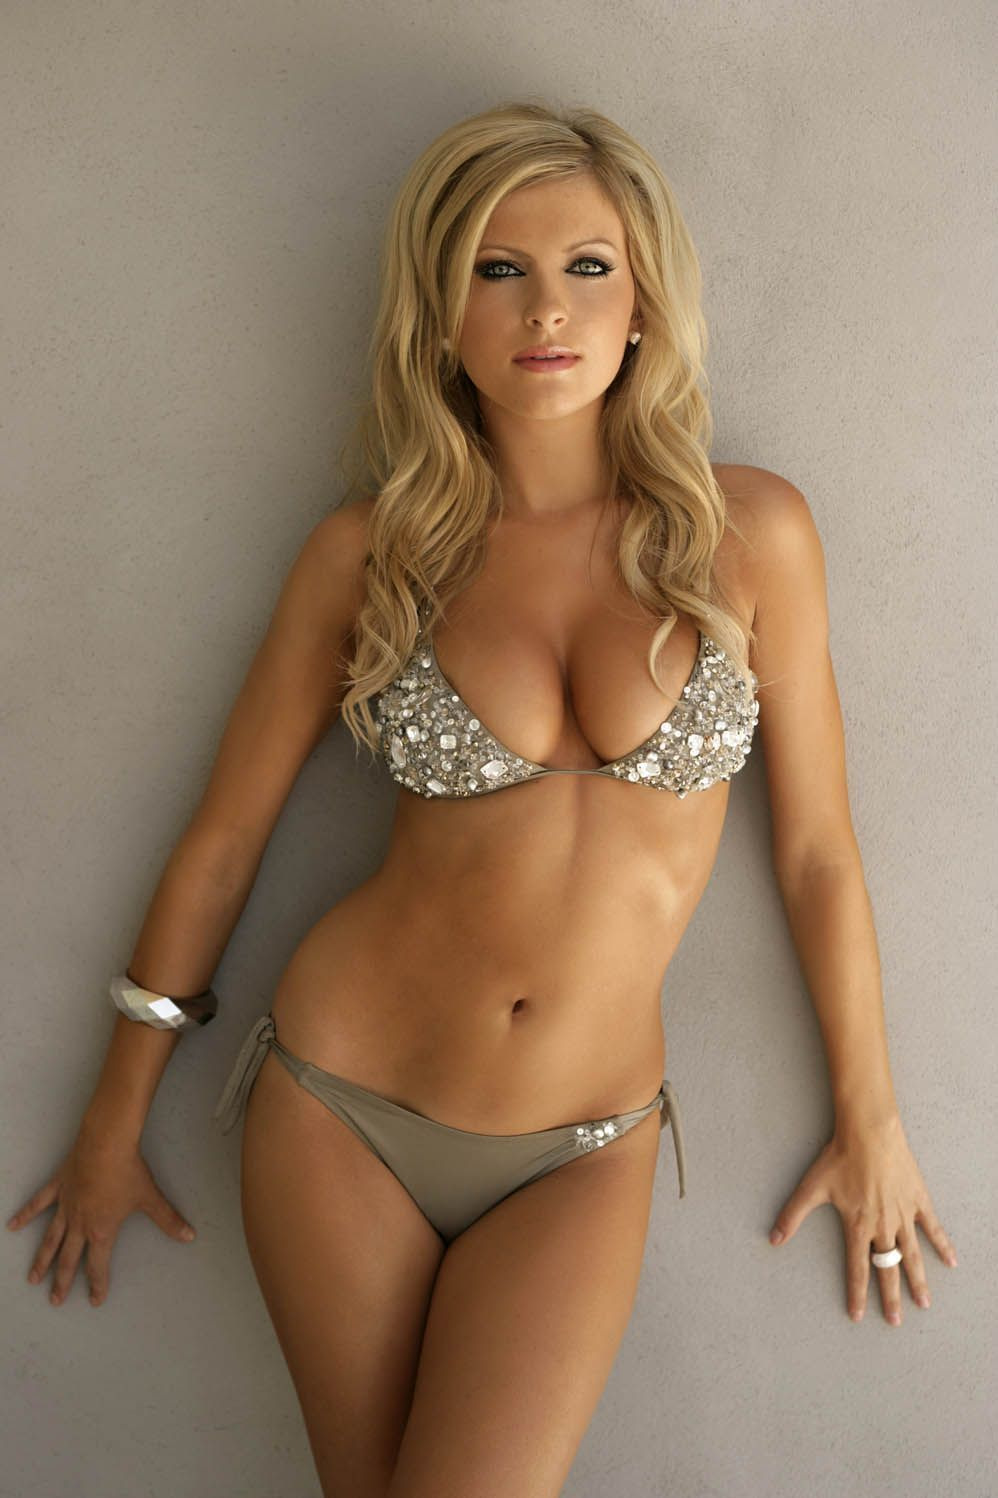 Very hot girls lifeguared naked pics